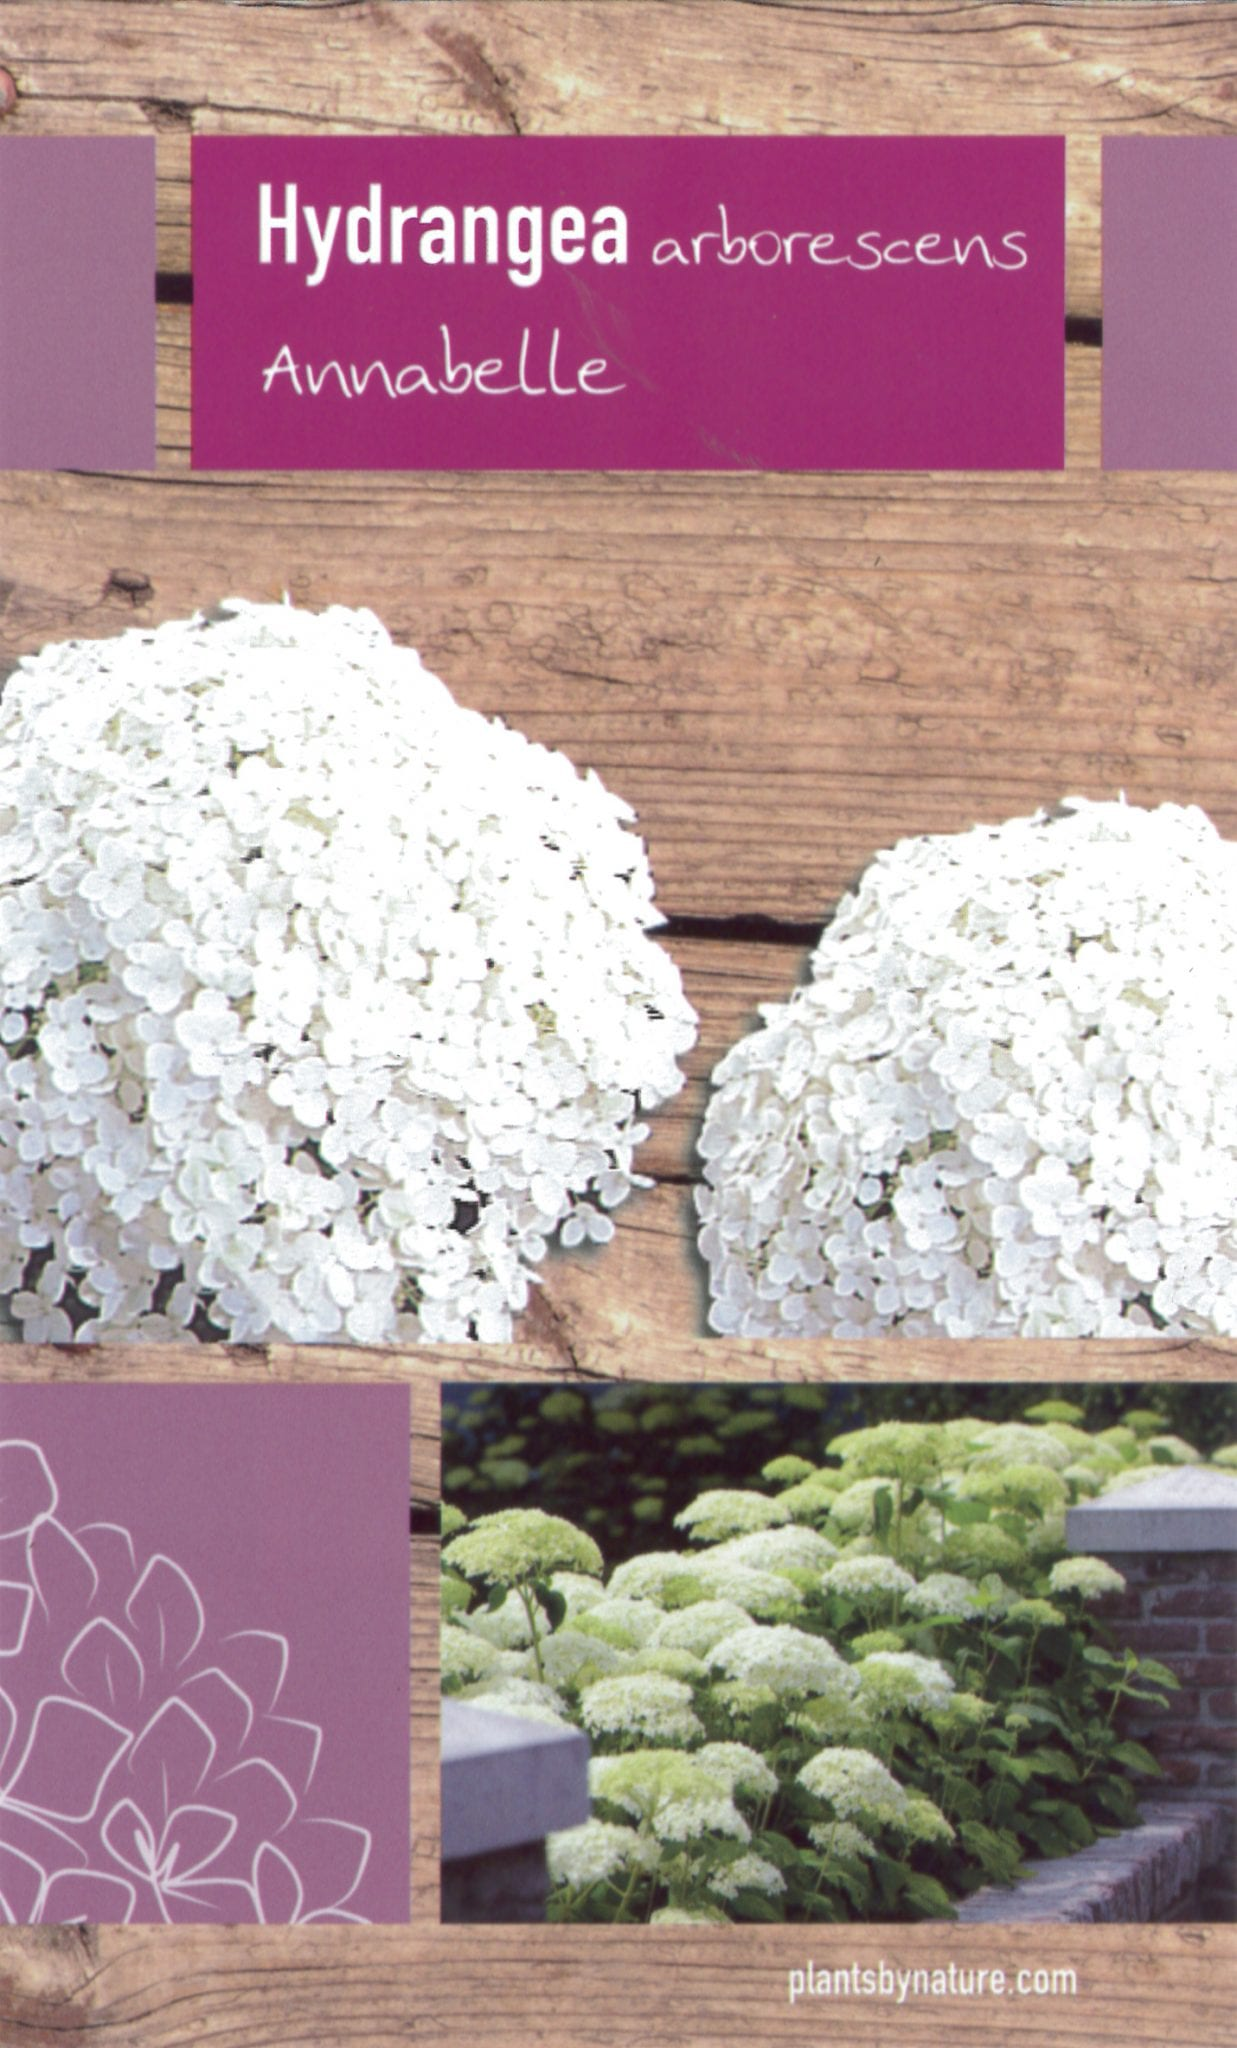 Hydrangea arborescent 'Strong Annabelle' etiket voorzijde | Plants By Nature - gespecialiseerd in hydrangea